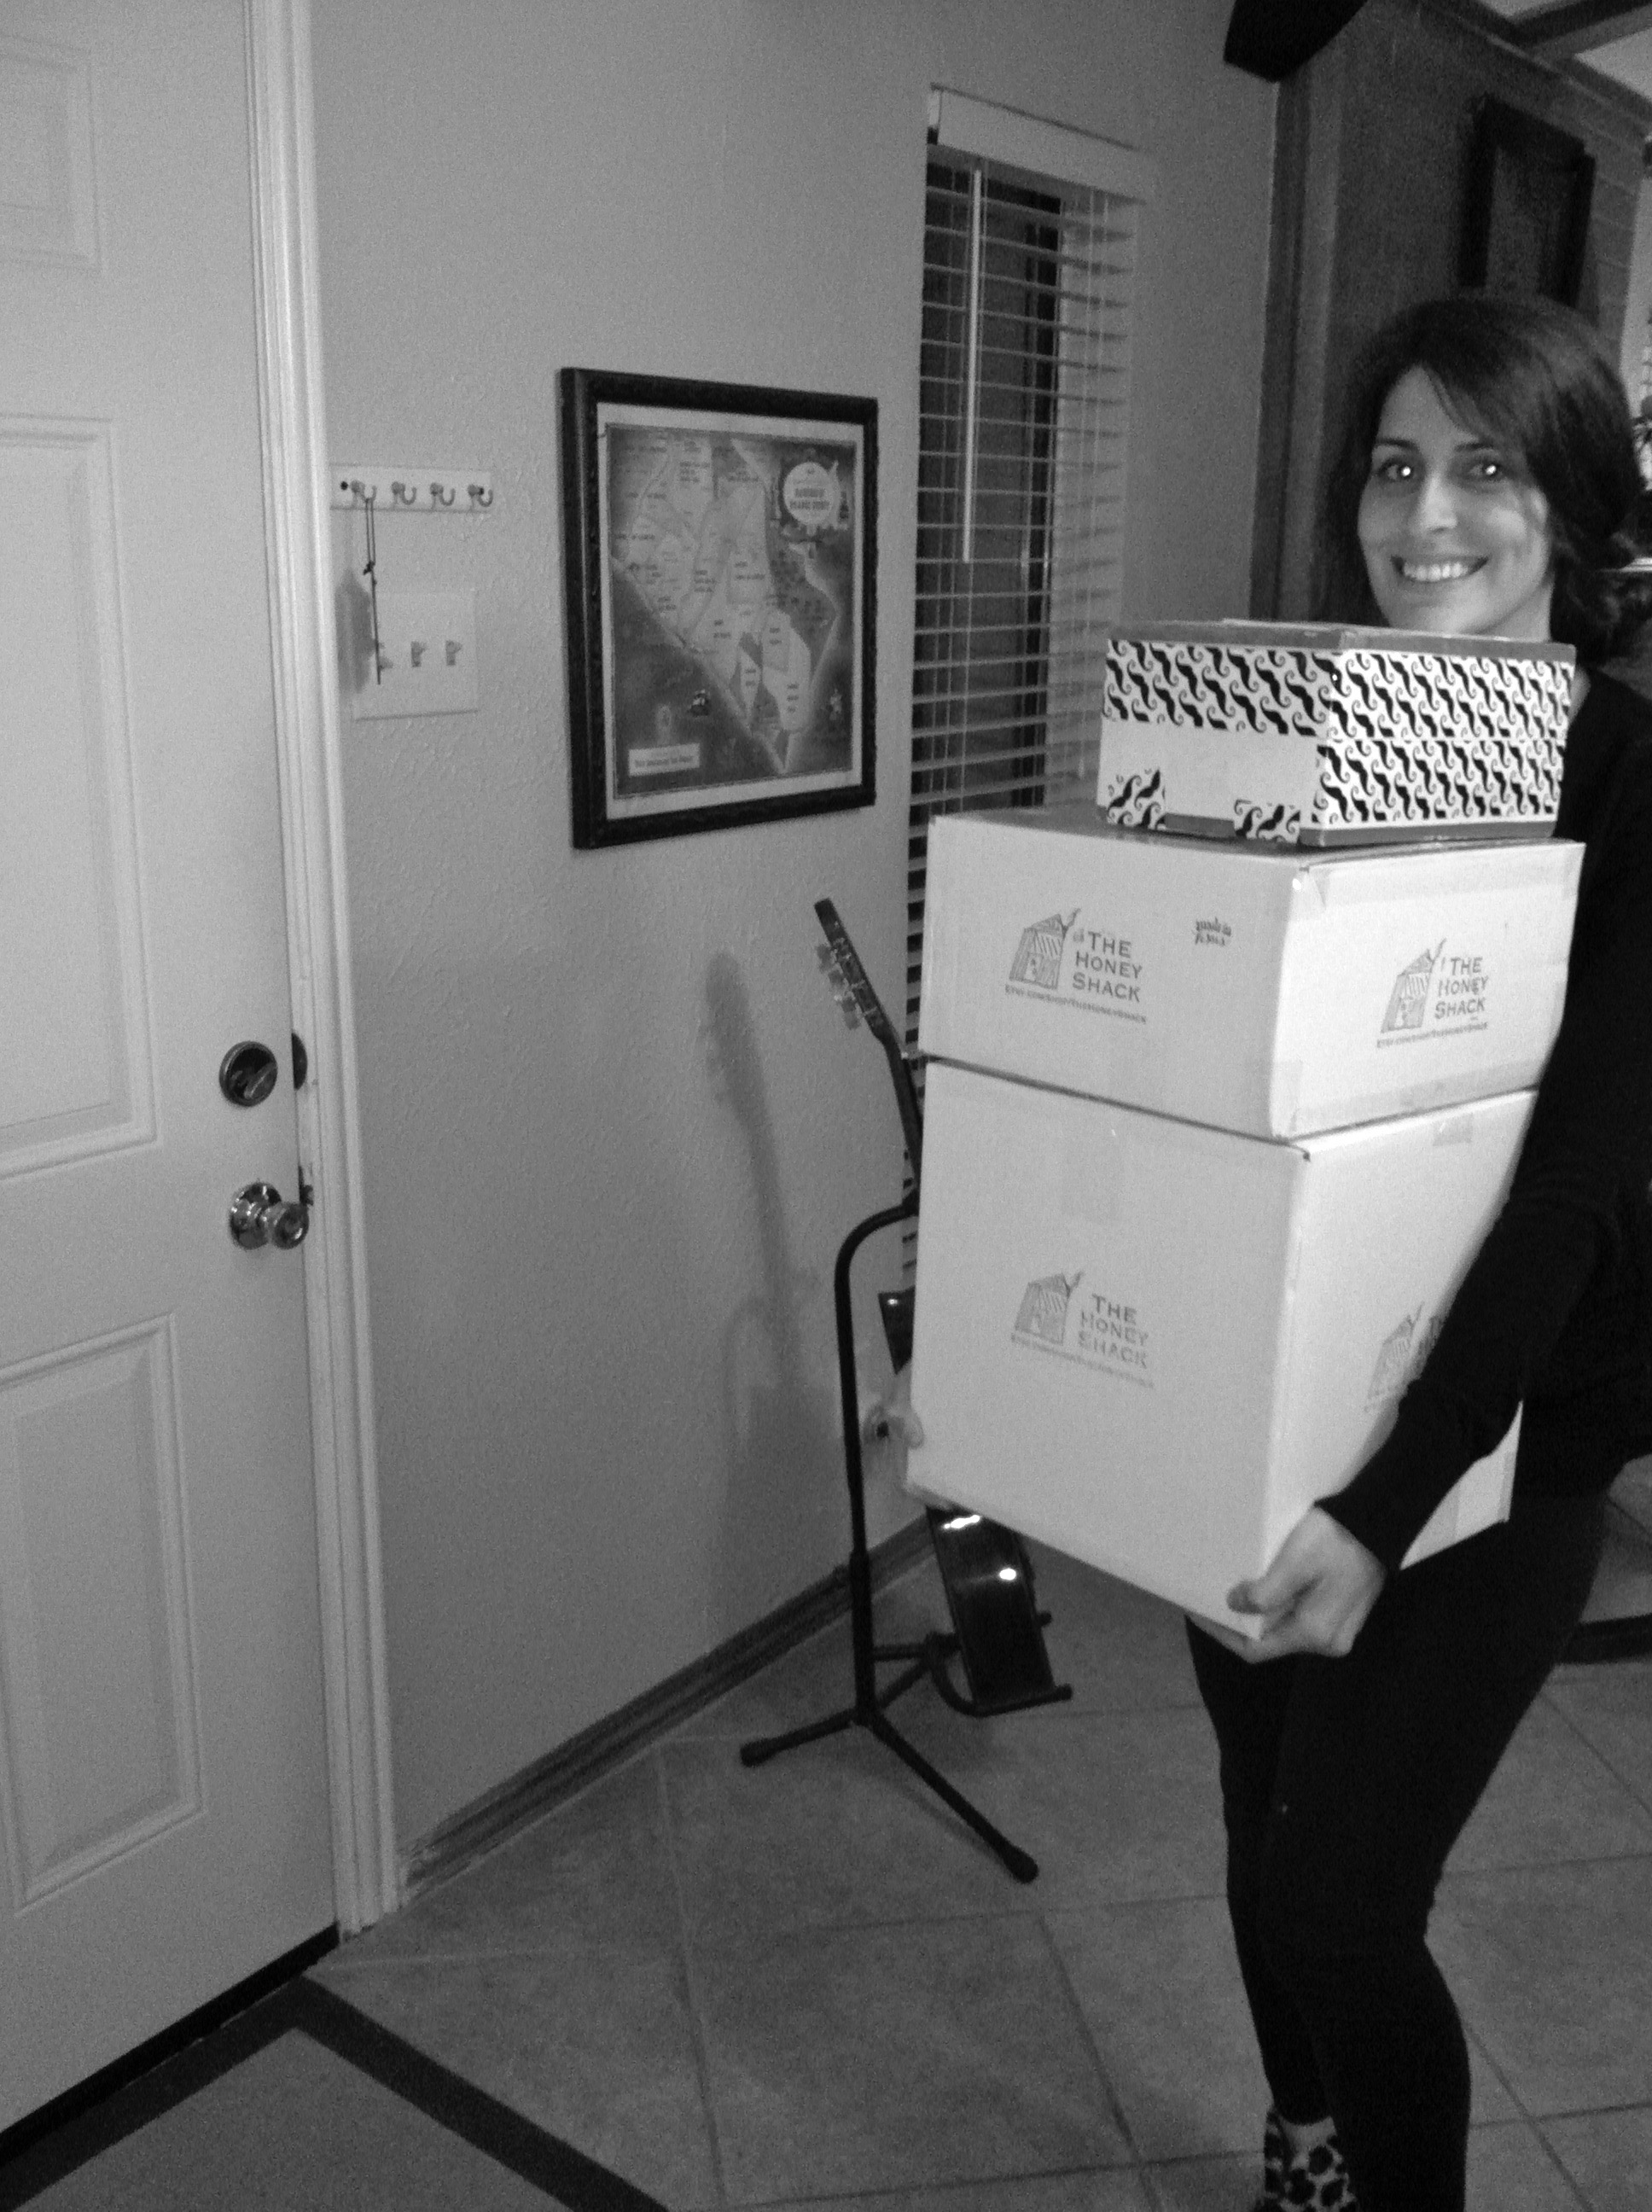 One of the early days, sending a few packages out...and I am not sure why one of them is wrapped in mustache duct tape? (pardon my glowing eyes)